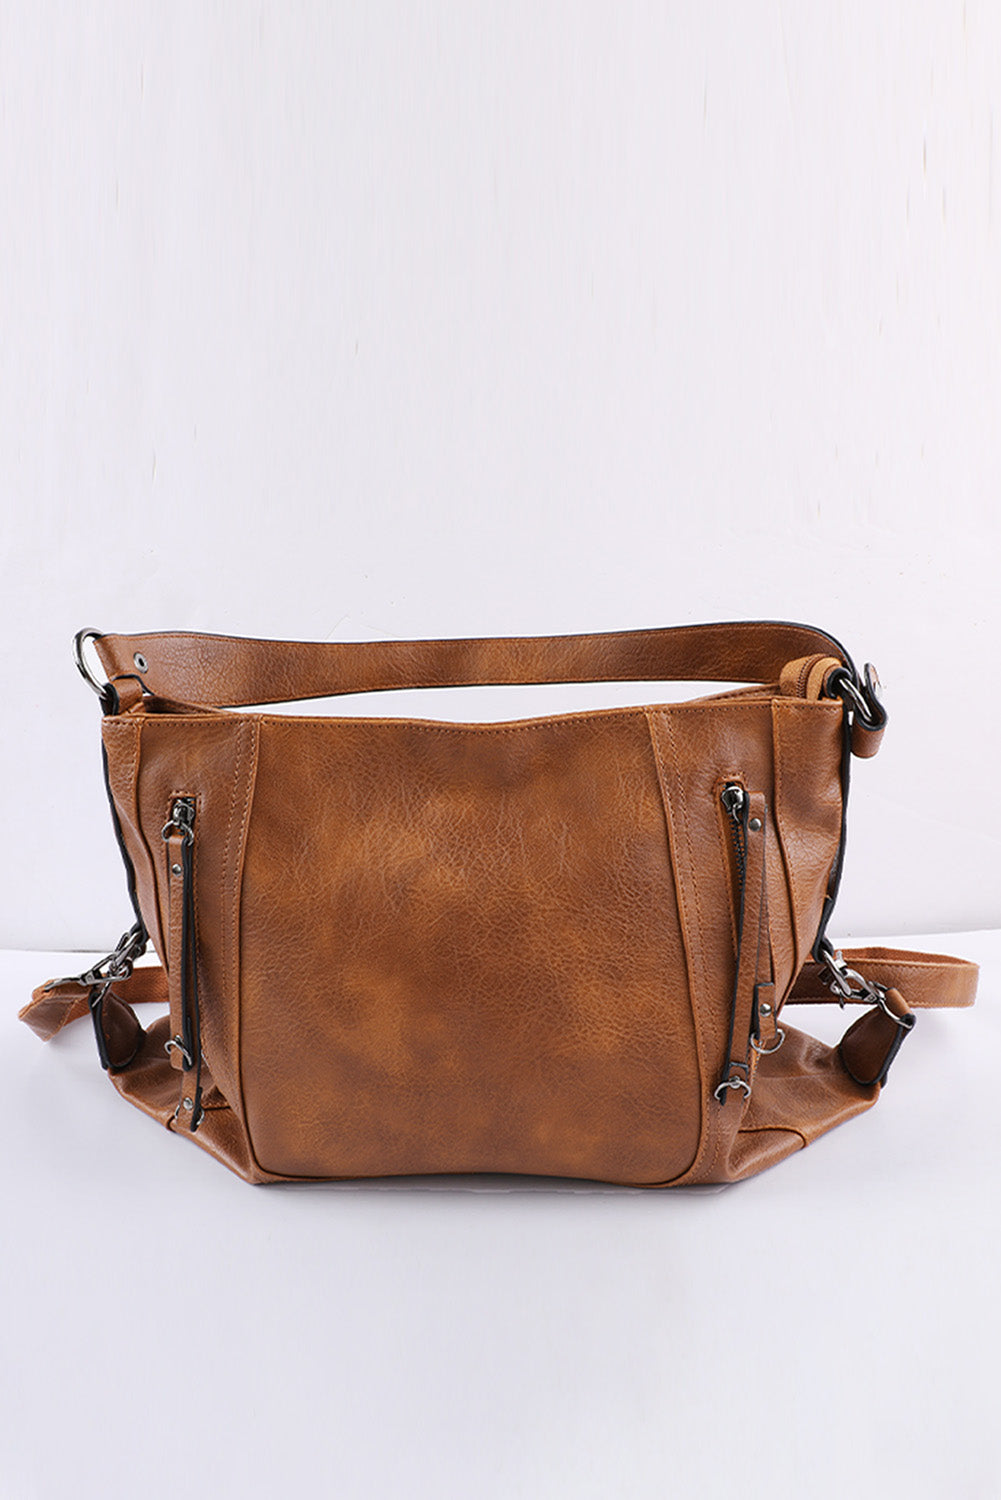 Brown Faux Leather Handbag Bags Discount Designer Fashion Clothes Shoes Bags Women Men Kids Children Black Owned Business